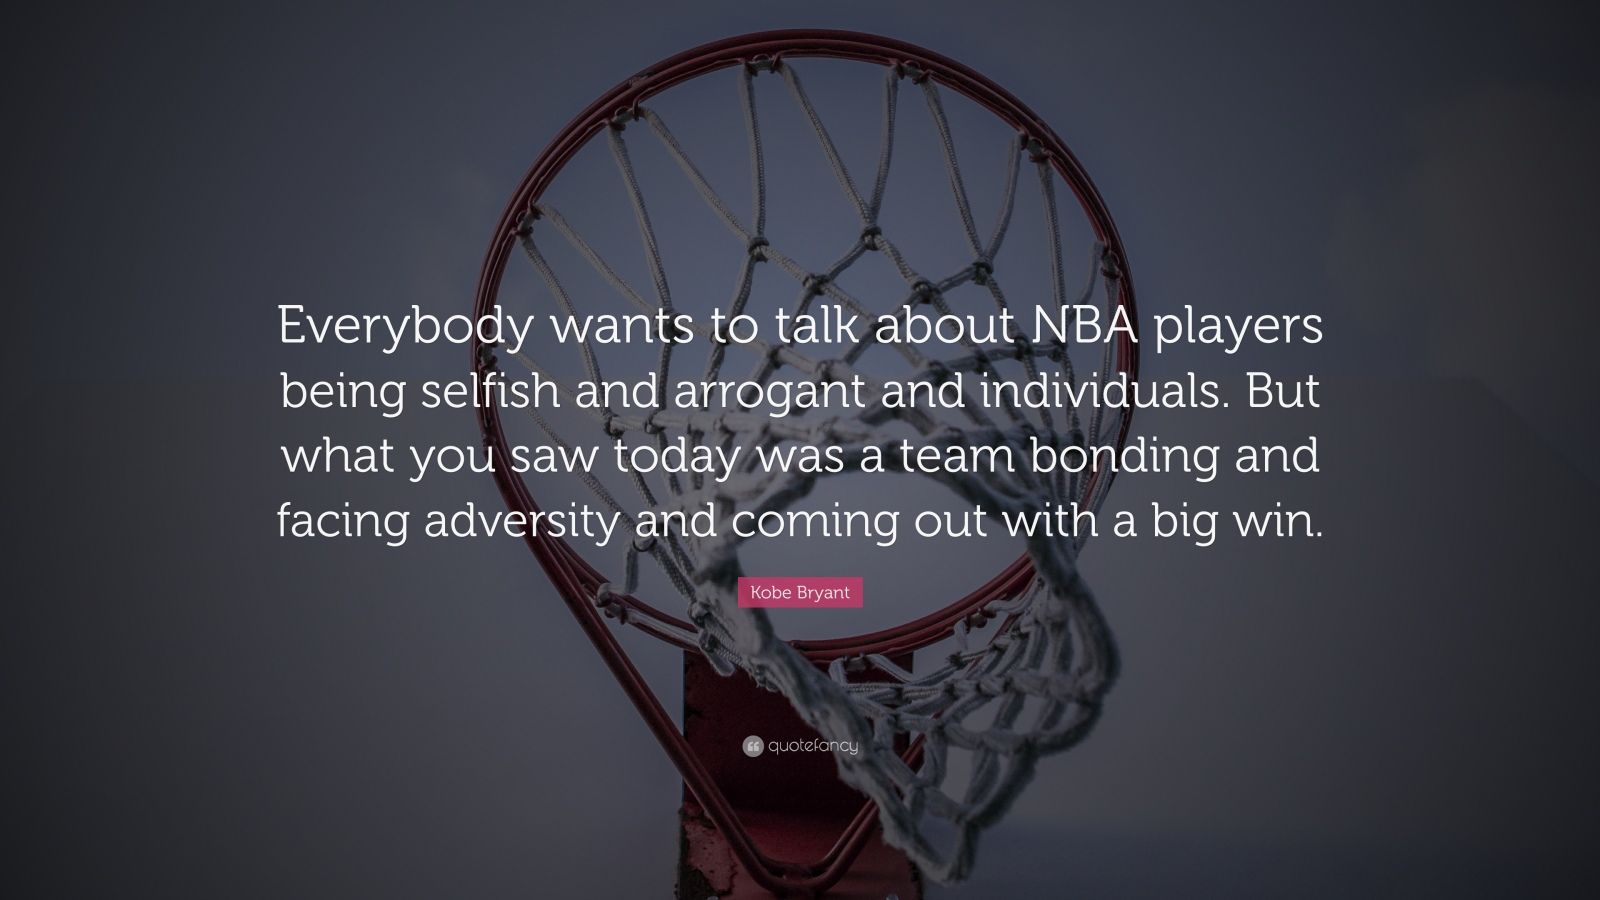 adversity basketball and michael jordan quote Michael jordan- overcoming an obstacle who is michael jordan  michael jordon was born on february 17,1963 in brooklyn,new york michael jordan has 5 siblings, growing up in wilmington, north carolina, jordan developed a competitive edge at an early age.